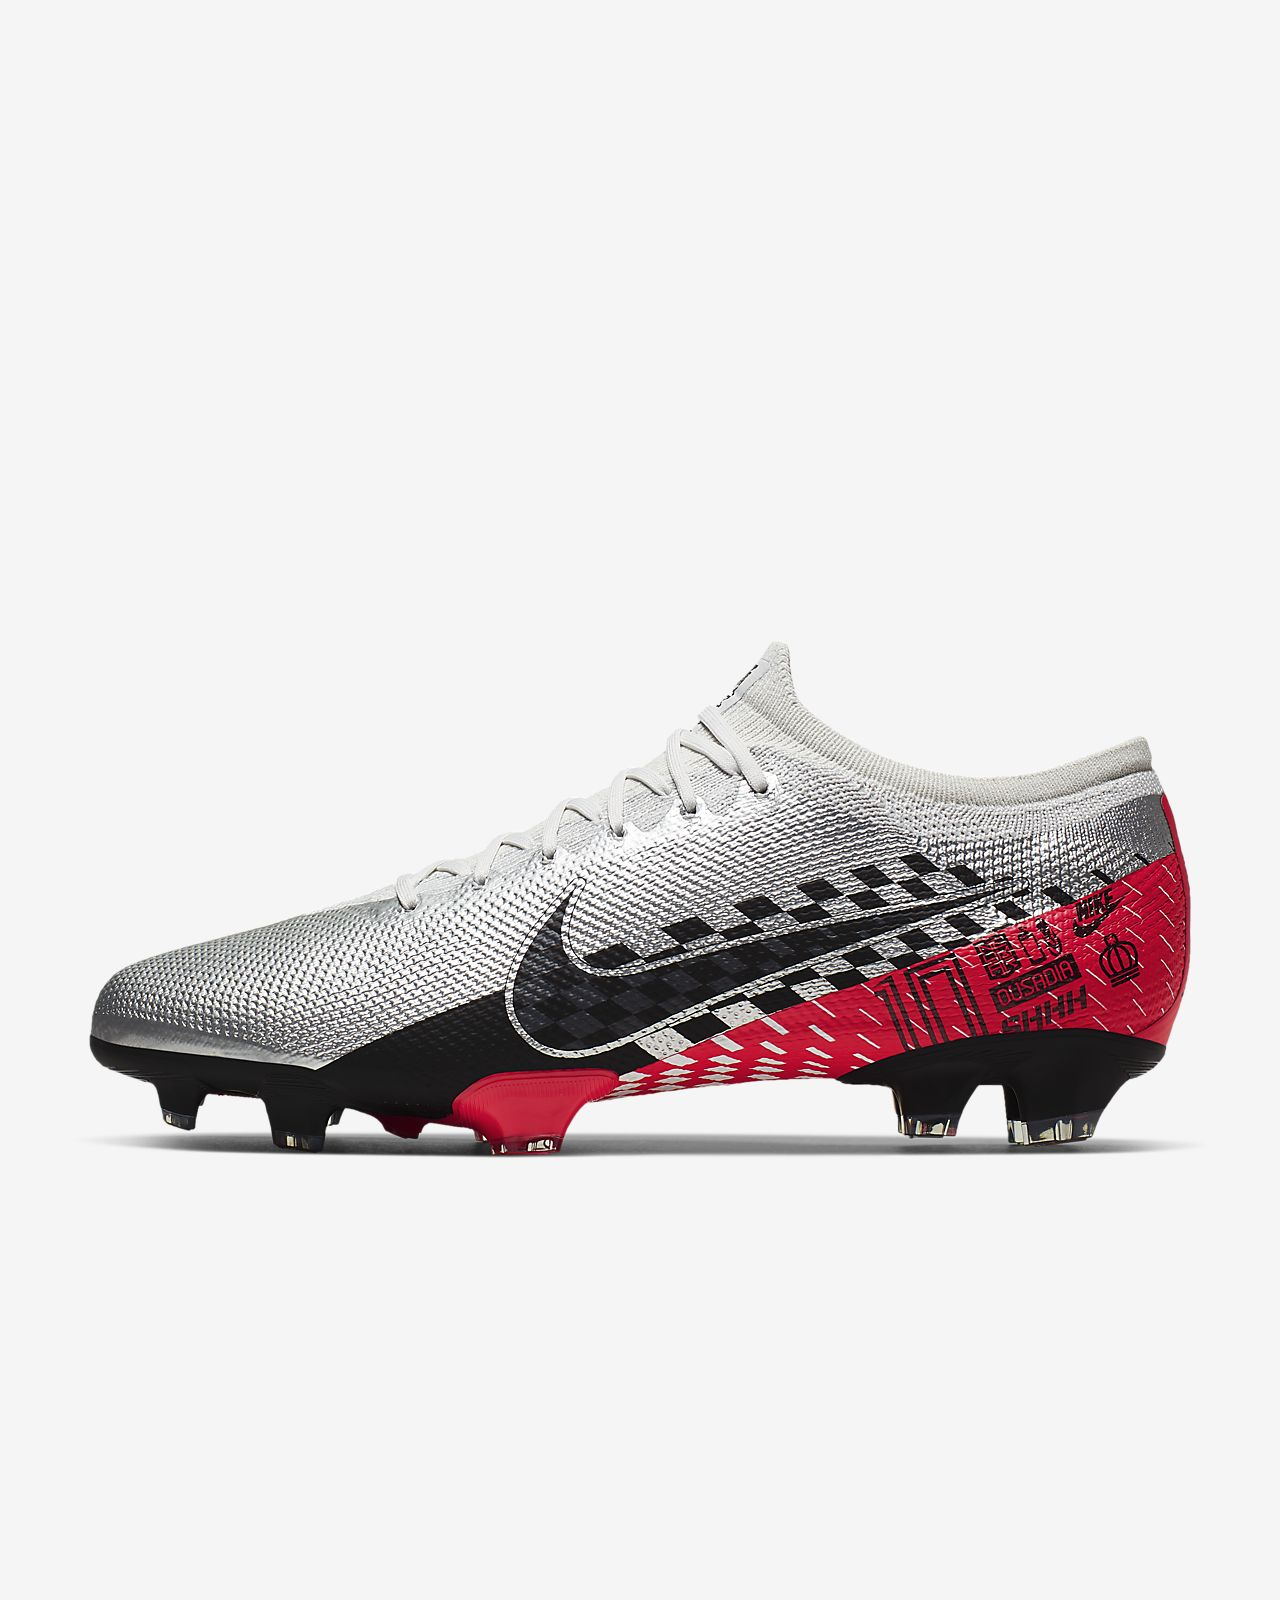 sneakers for whole family best deals on Nike Mercurial Vapor 13 Pro Neymar Jr. FG Fußballschuh für normalen Rasen